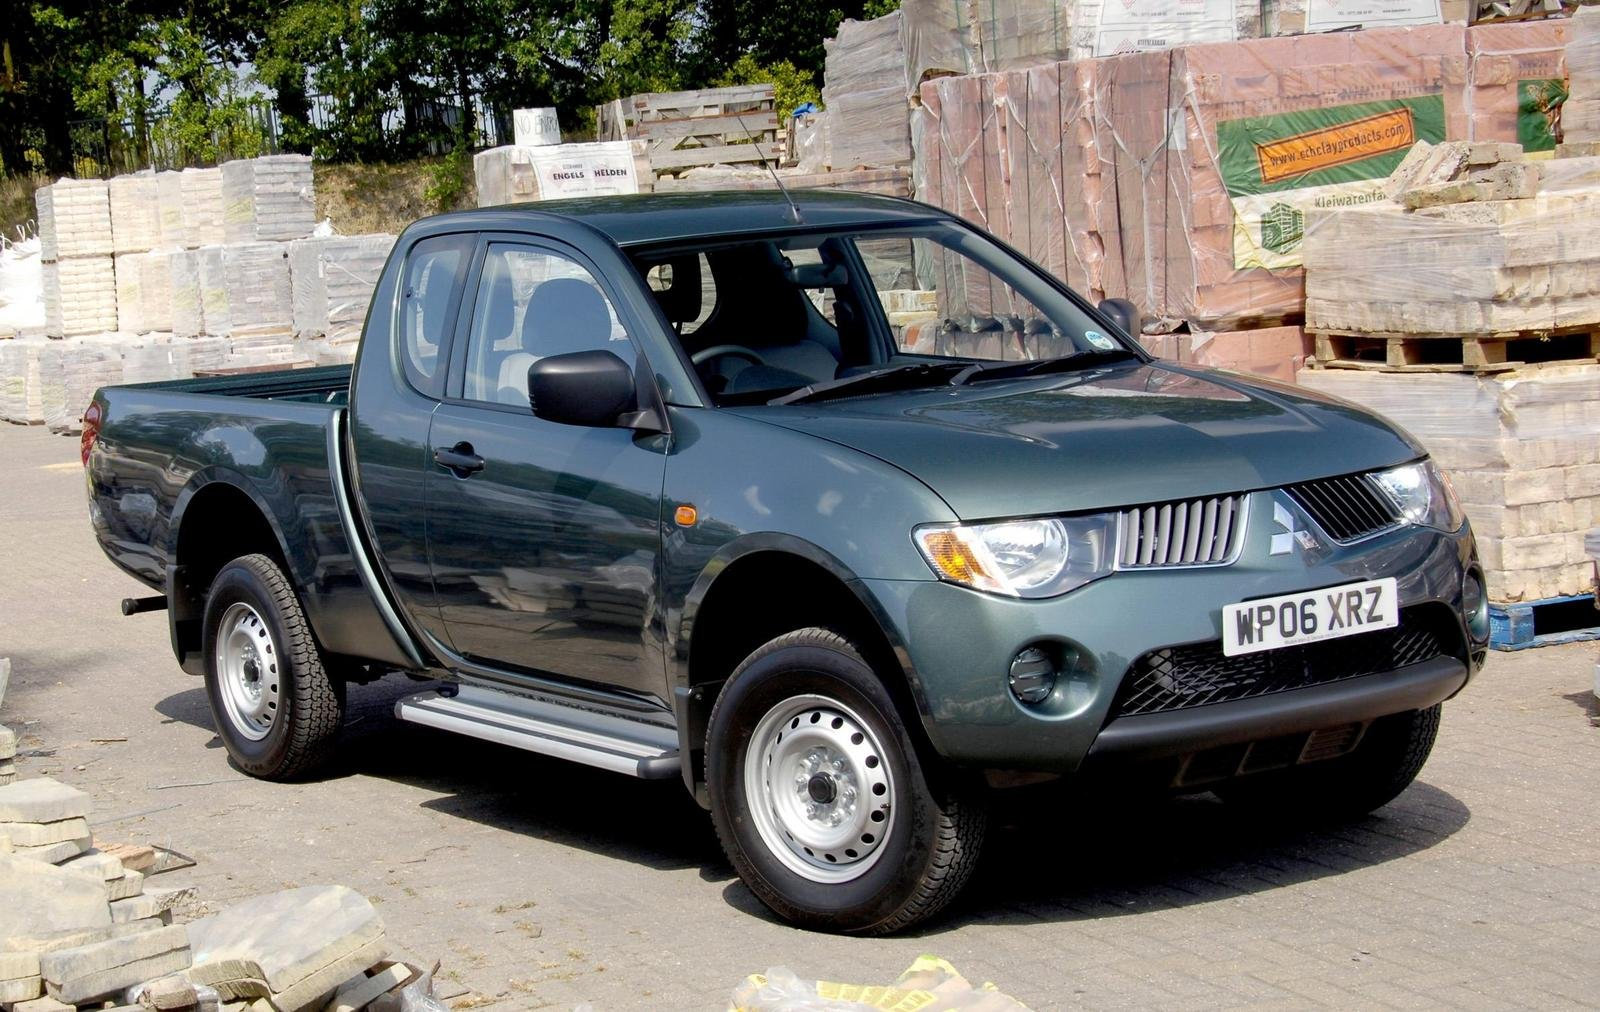 Types Of Pickup Trucks >> Mitsubishi L200 Wins Award For 'Best Pick-up' In 2007 | Top Speed